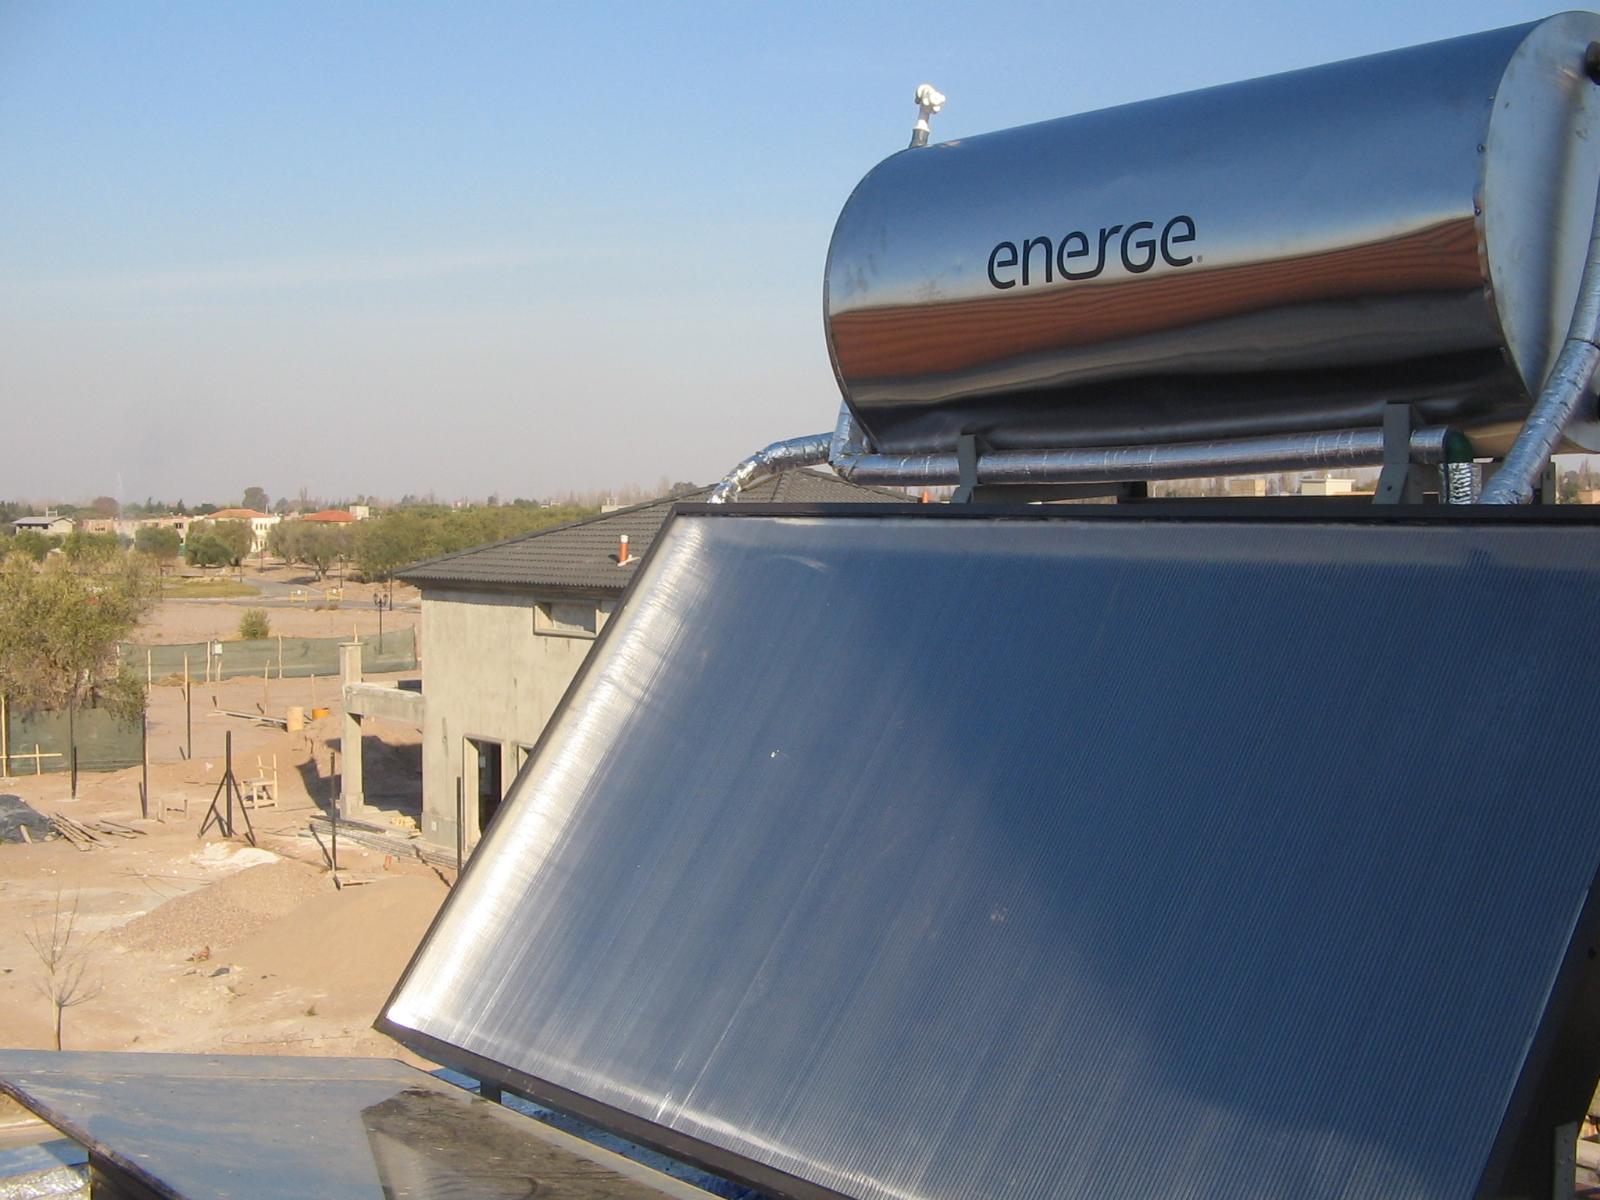 How-To: DIY Solar Hot Water Heater for